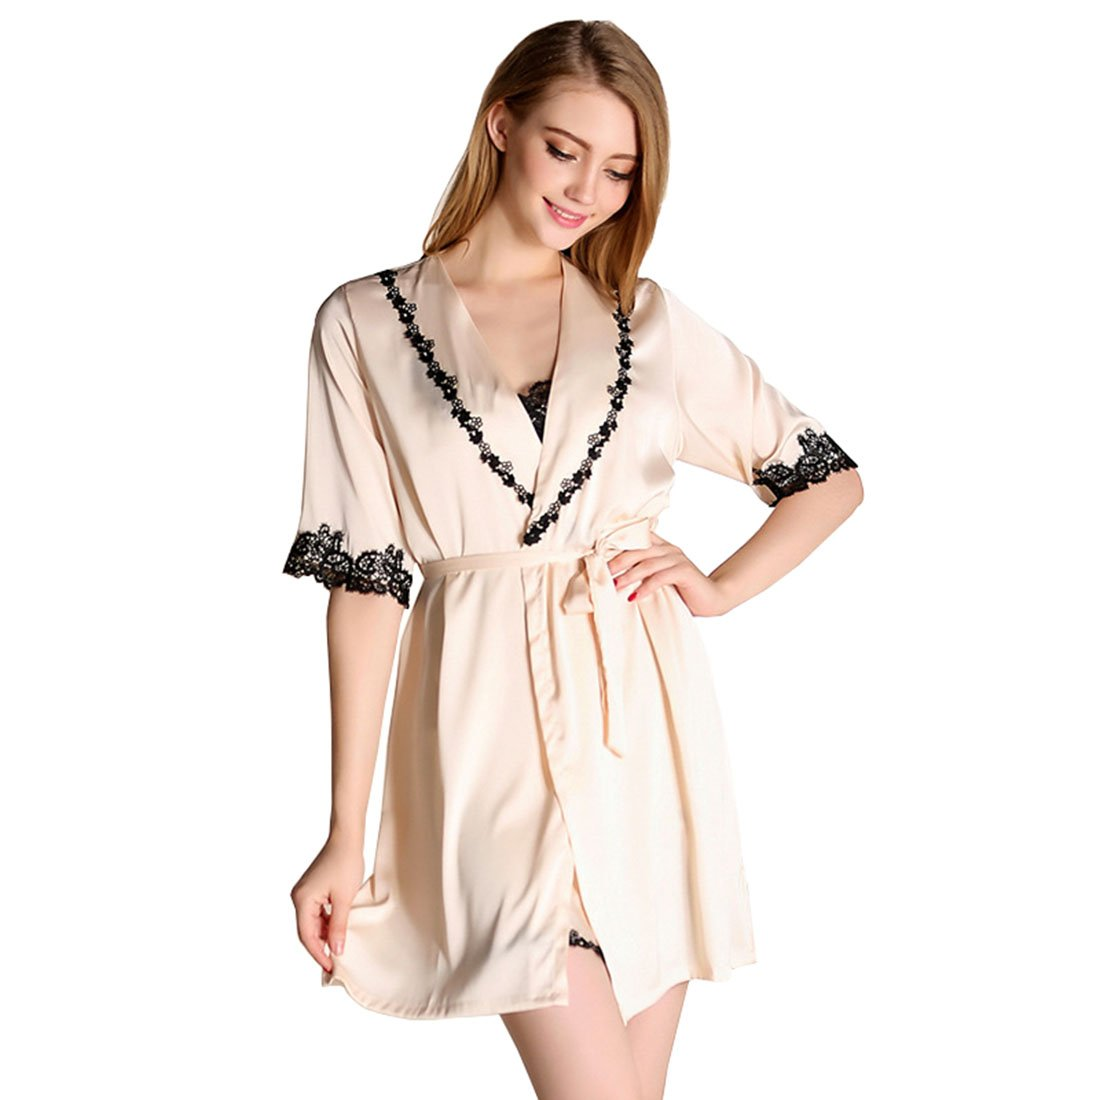 8e31d933941 Top 10 wholesale Buy Nightgowns - Chinabrands.com